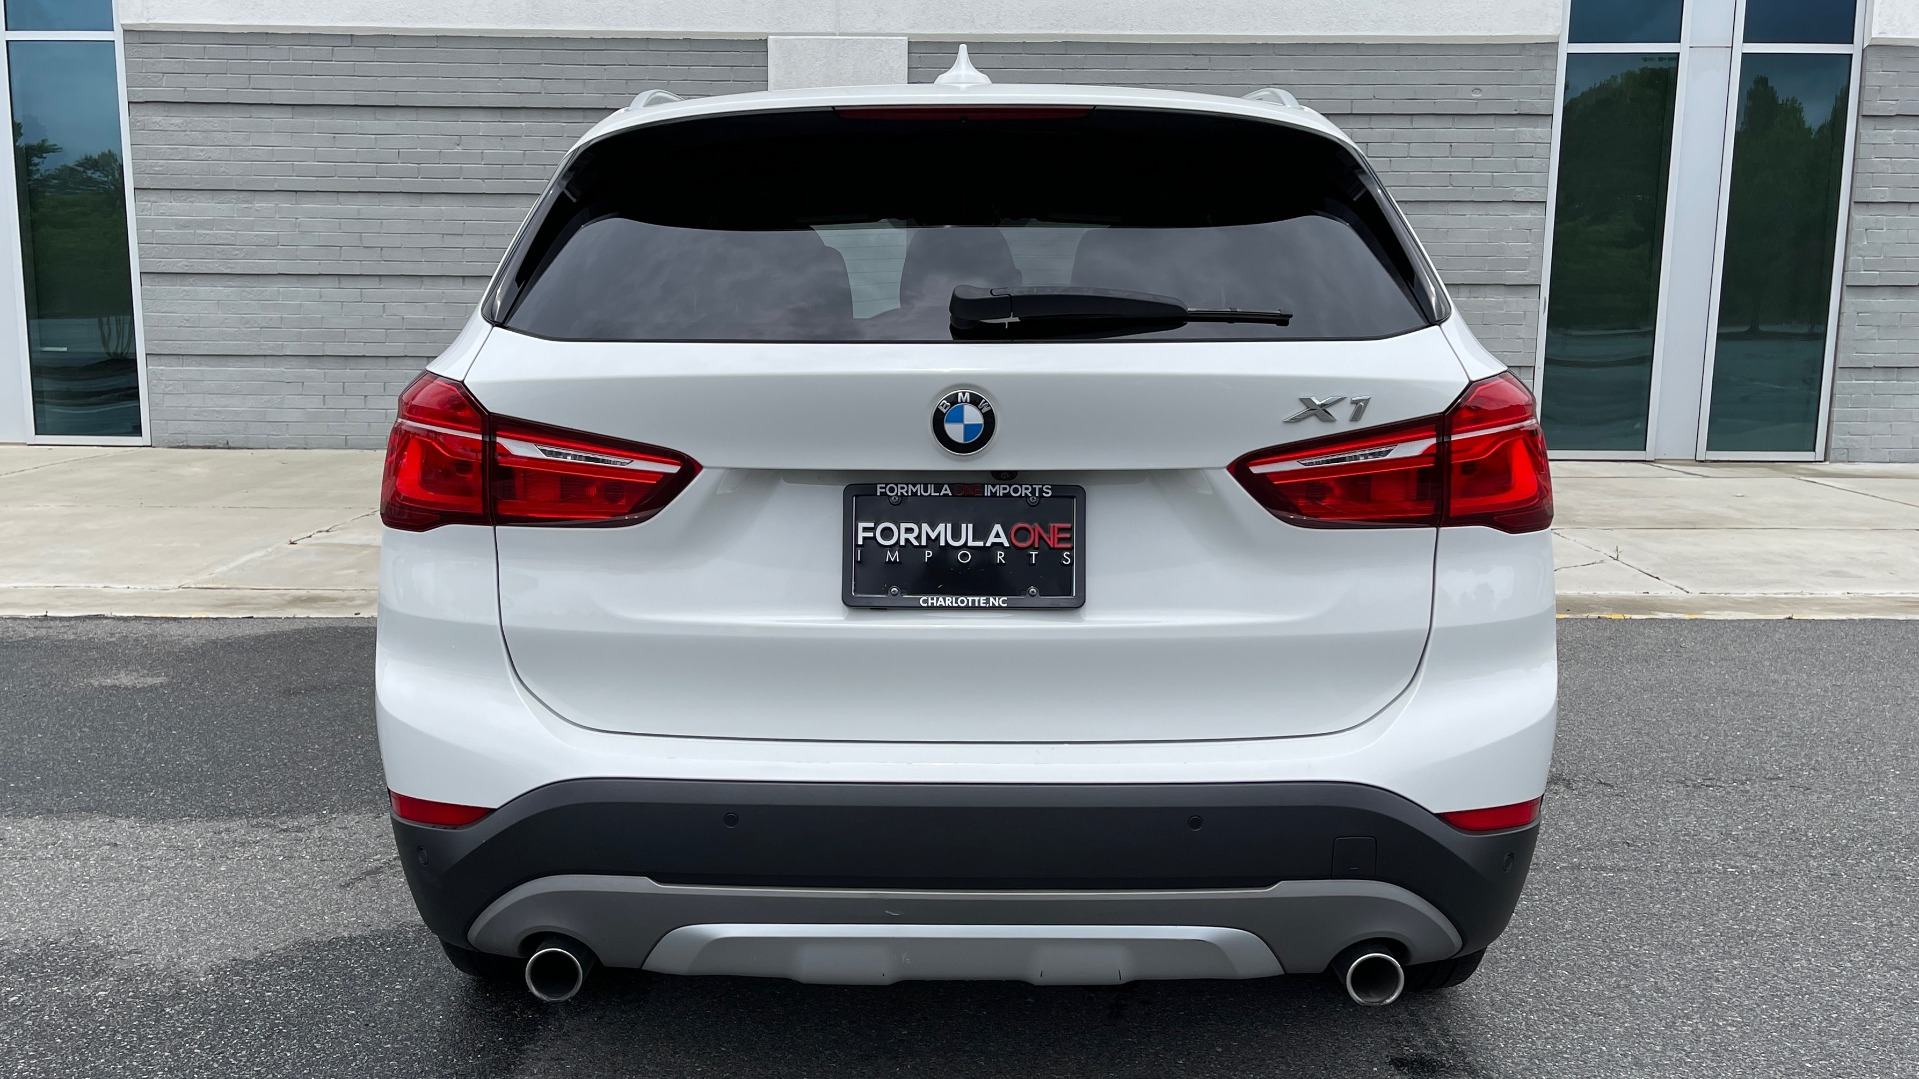 Used 2018 BMW X1 XDRIVE28I / CONV PKG / PANO-ROOF / HTD STS / PARK ASST / REARVIEW for sale $30,995 at Formula Imports in Charlotte NC 28227 28